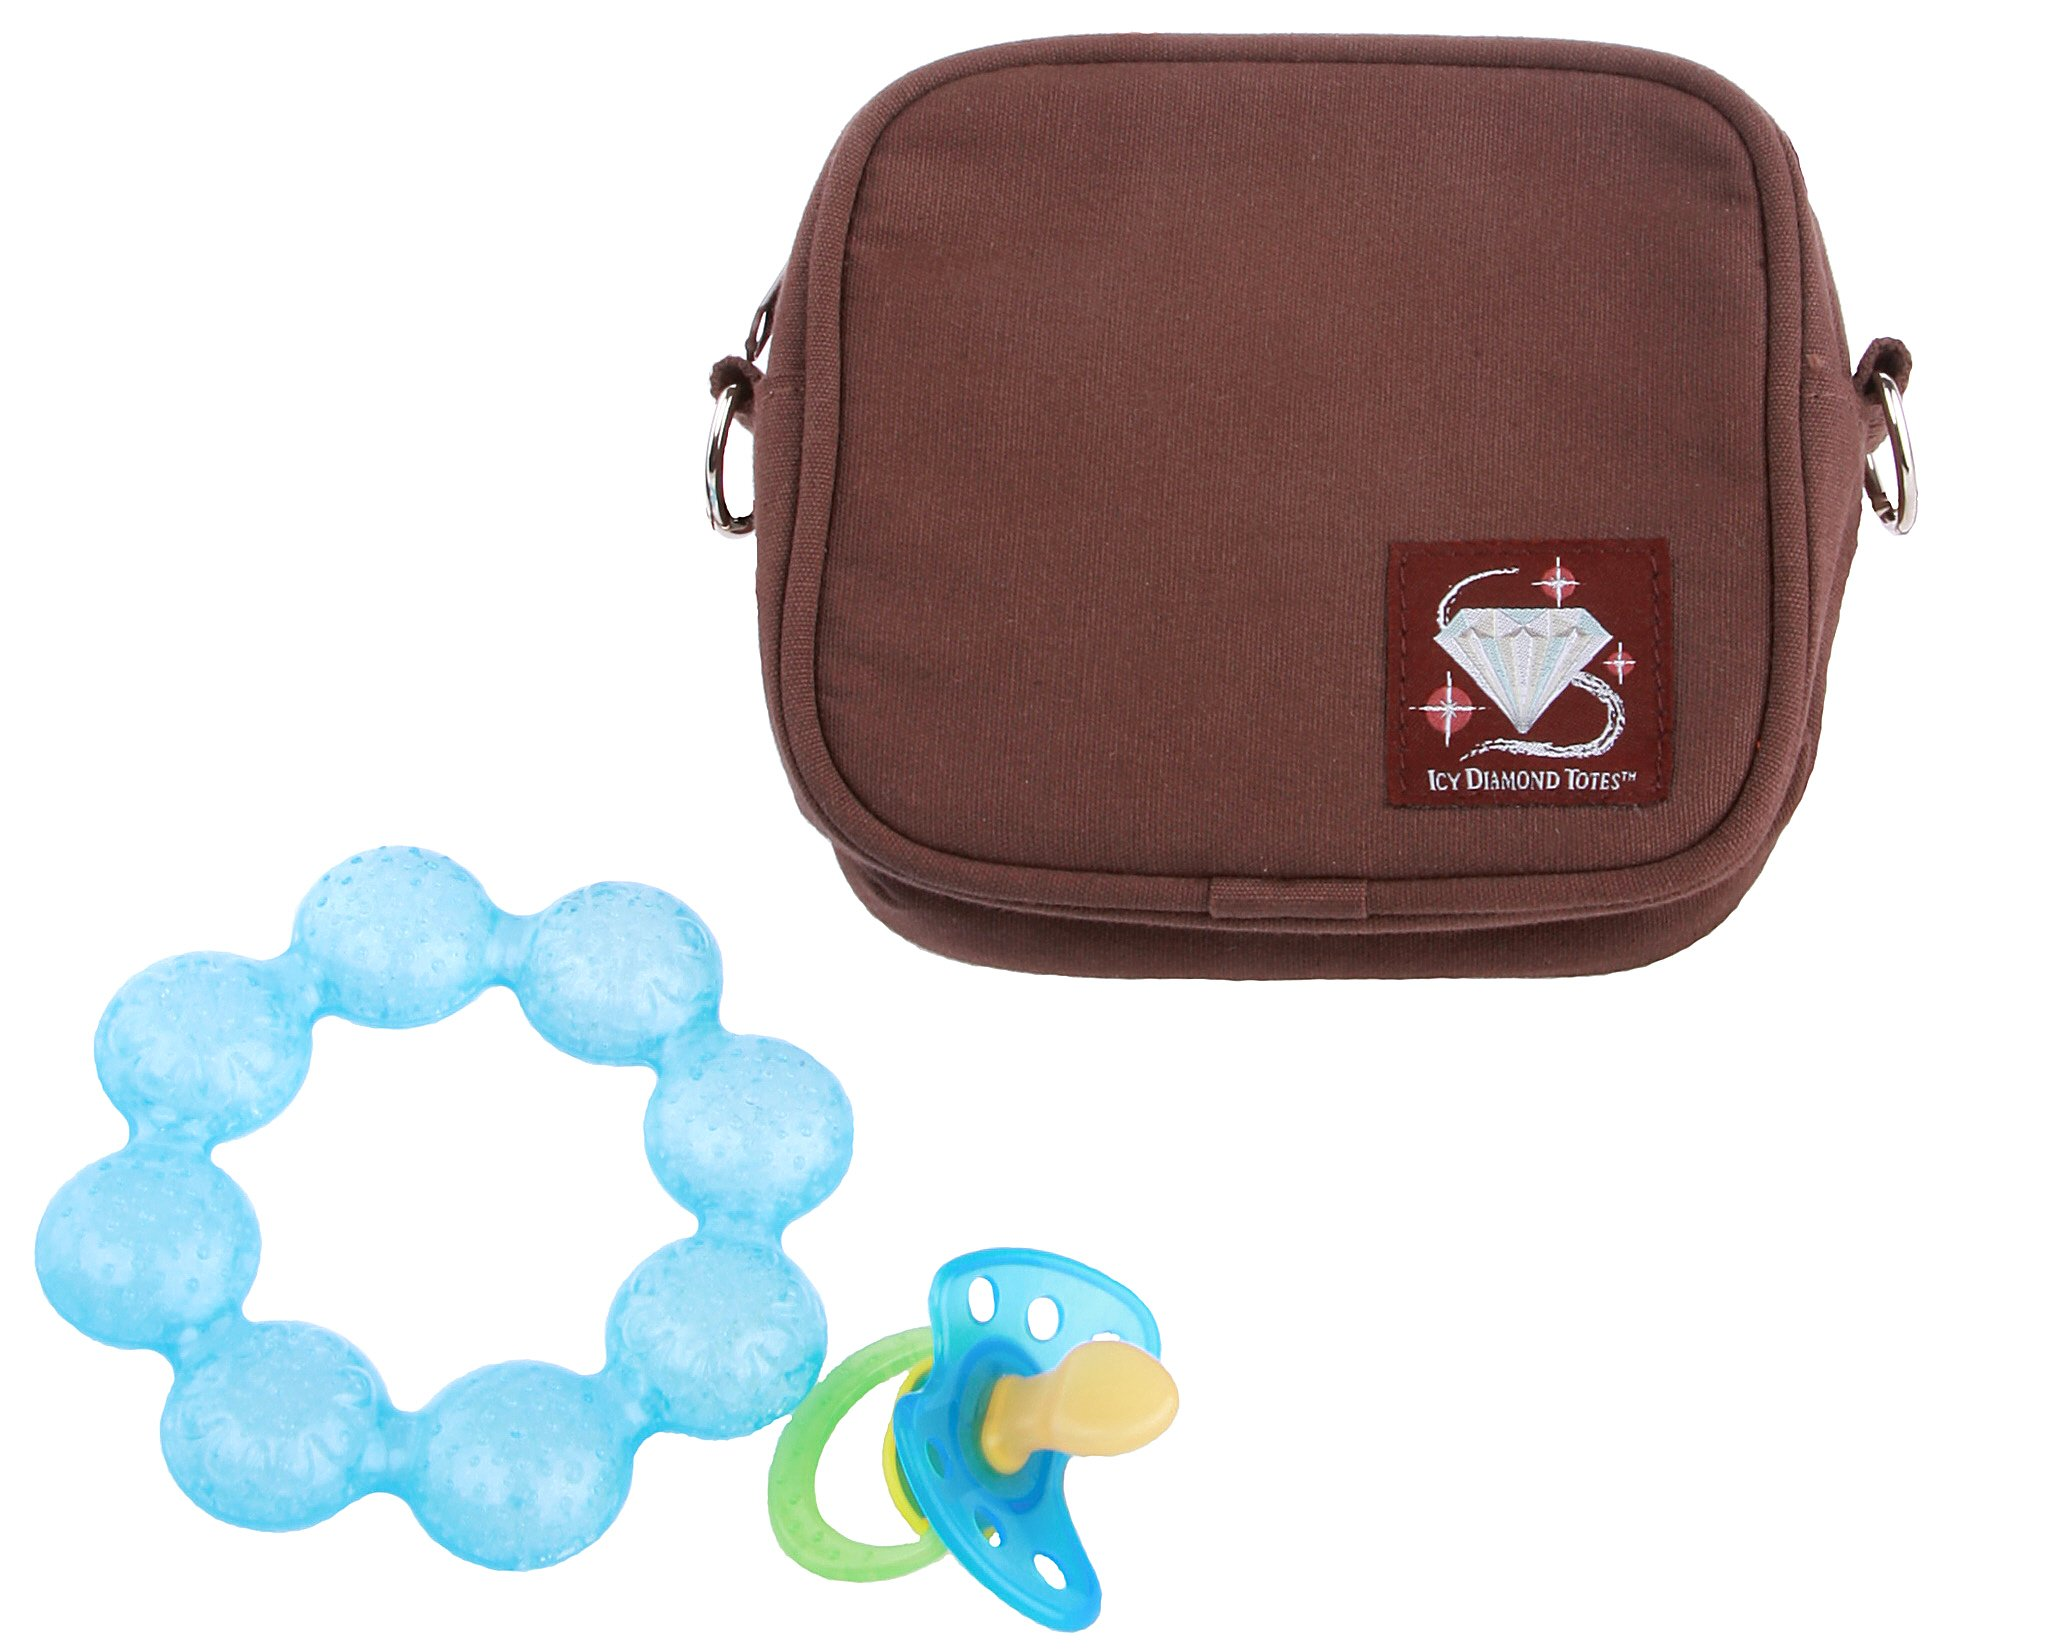 Icy Diamond Totes Insulated Medication Bag Travel